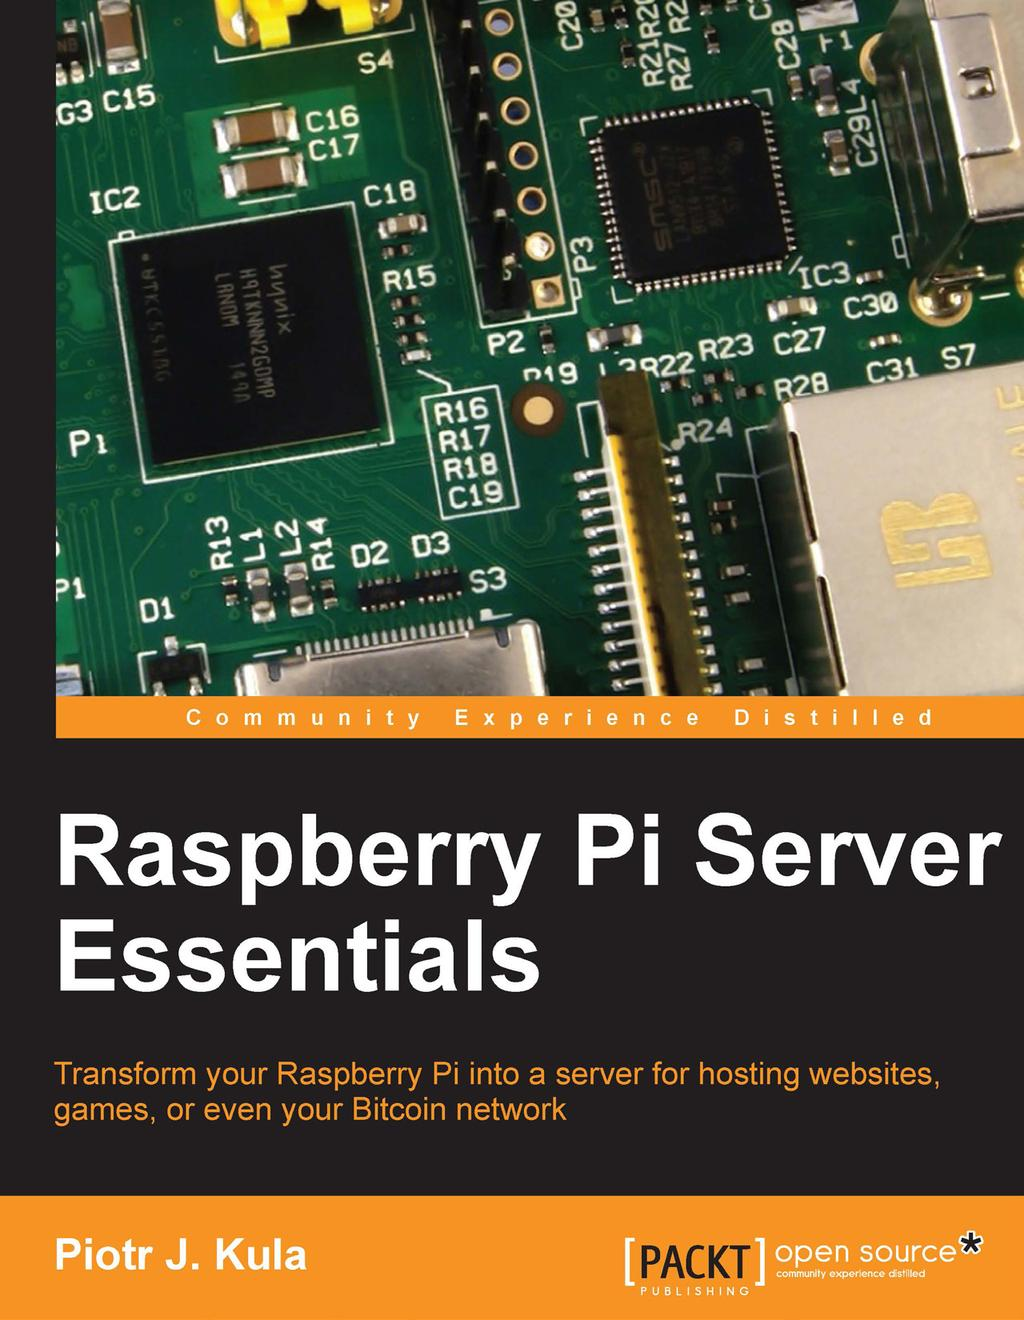 Raspberry Pi Server Essentials Pdf Powered Usb Hub Circuit Diagram Rpi Hubs Elinuxorg Transcription